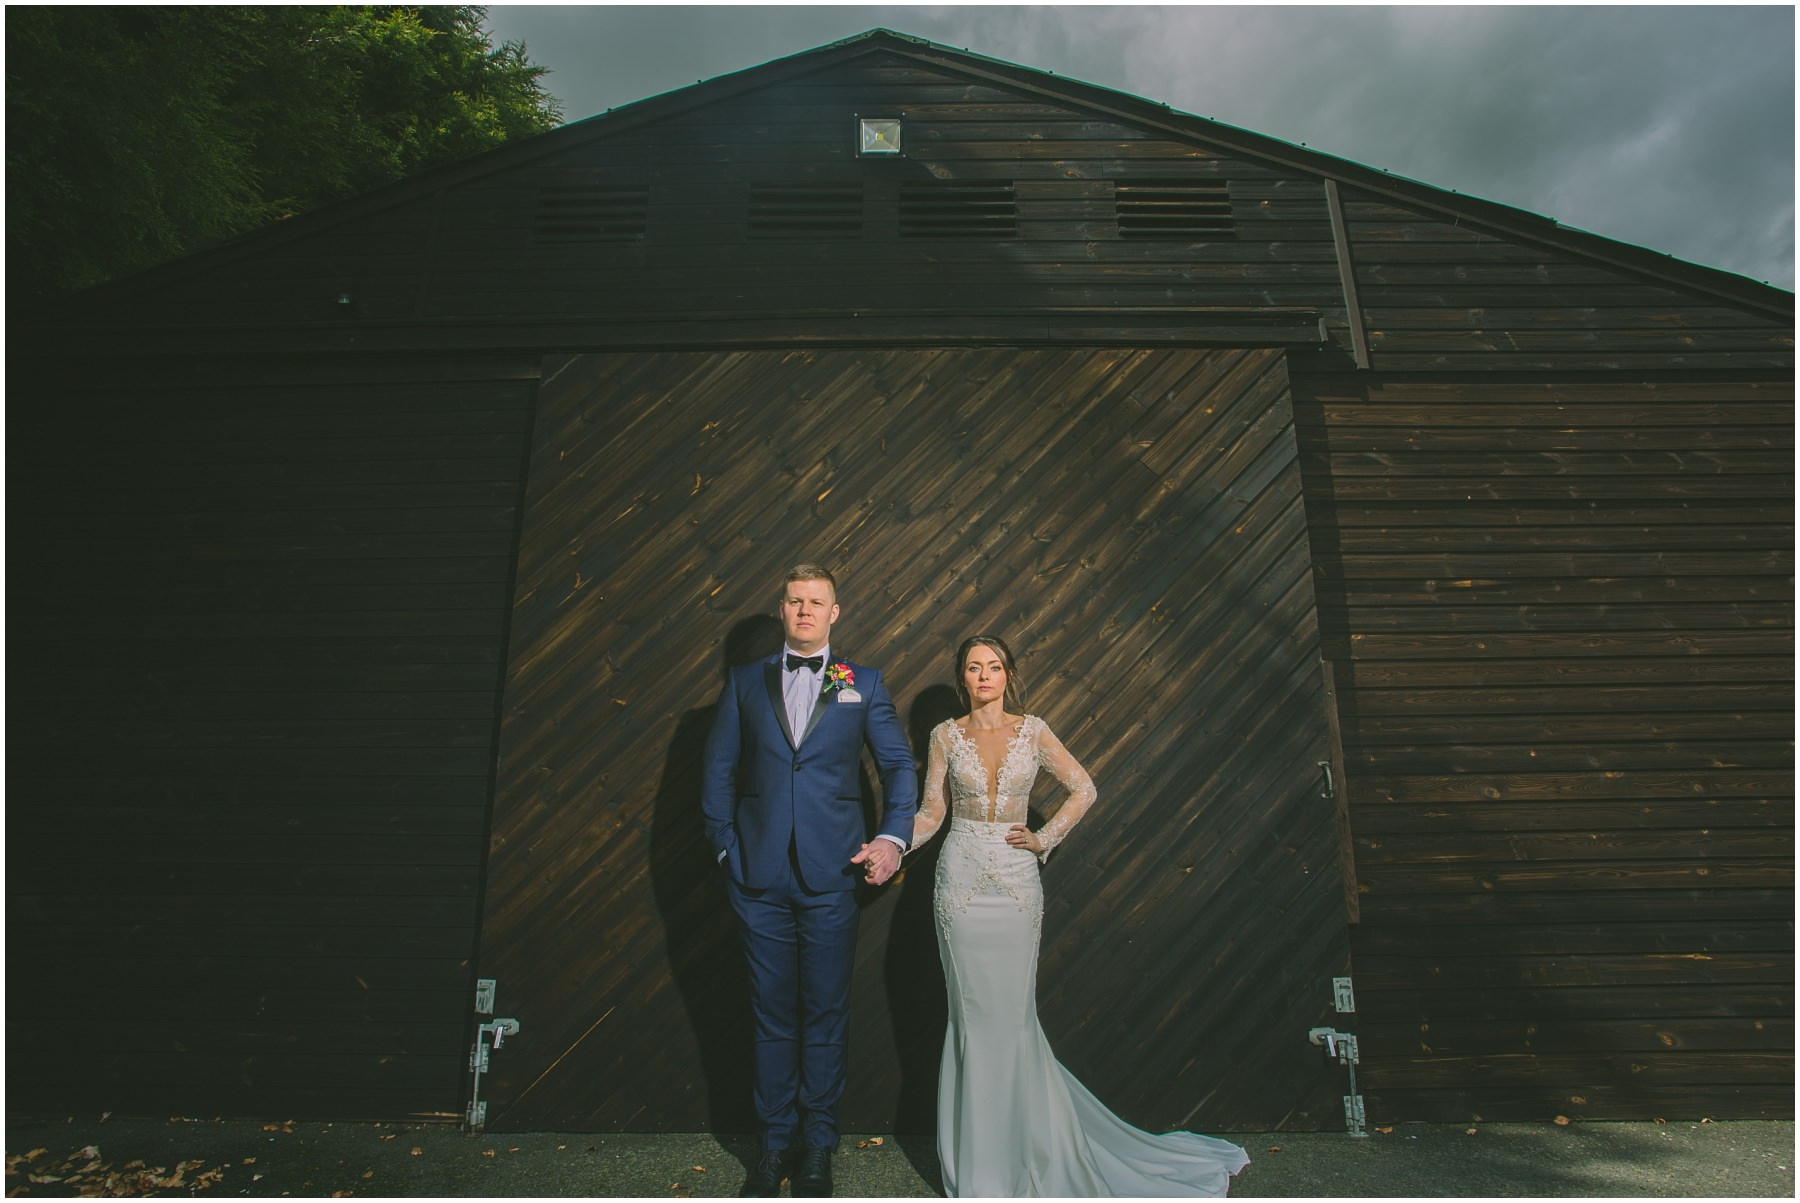 Colshaw Hall Wedding Photography // A Jonny Draper Workshop